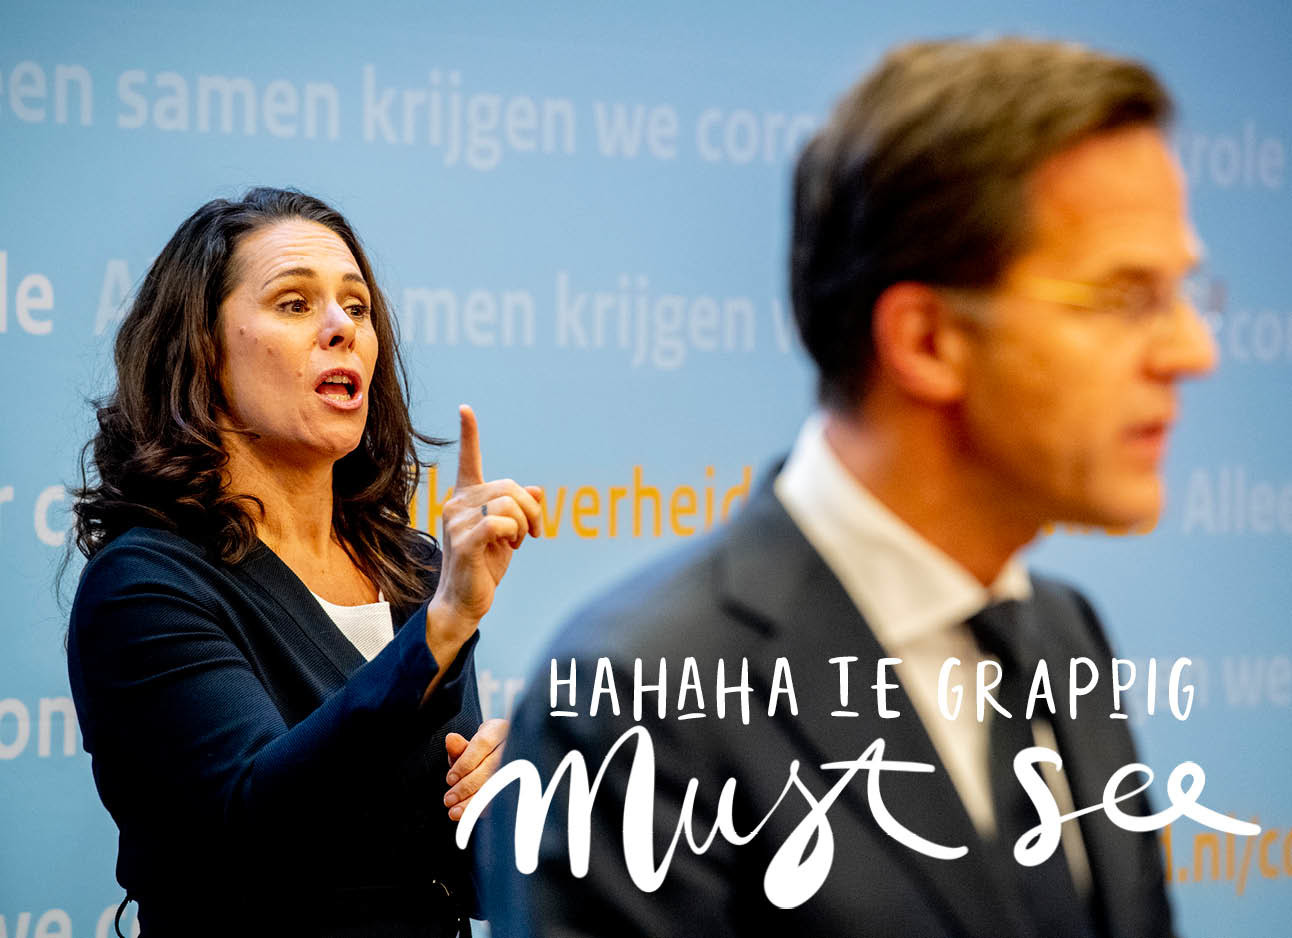 Video Irma Sluis en Mark Rutte